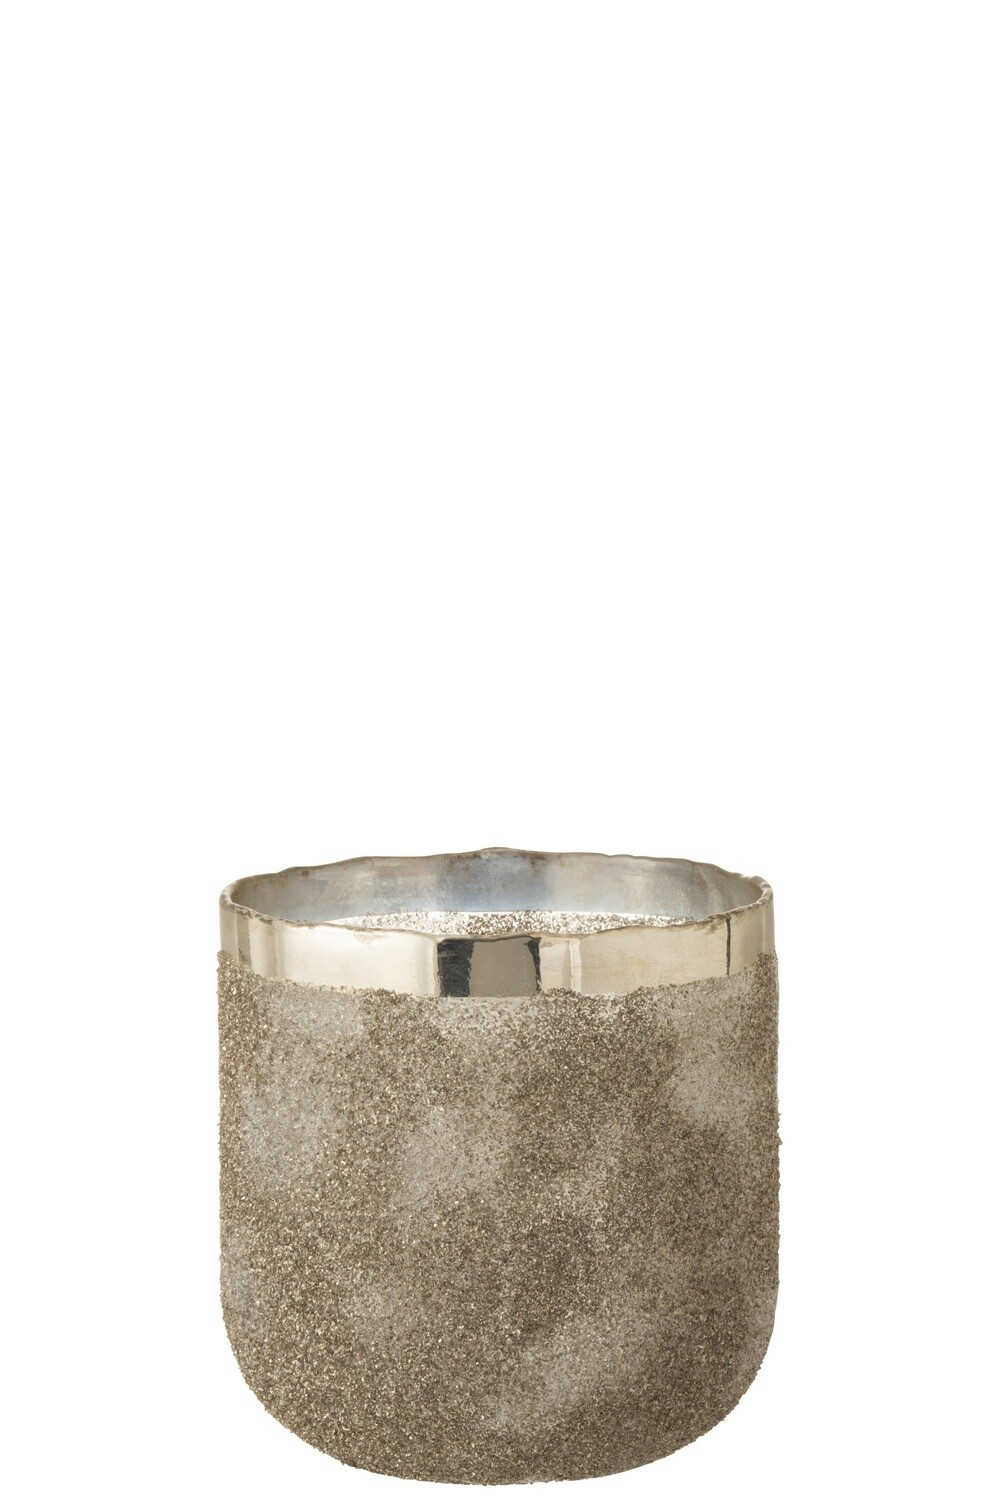 Theelichthouder Frosty Rond Glas Zilver Large